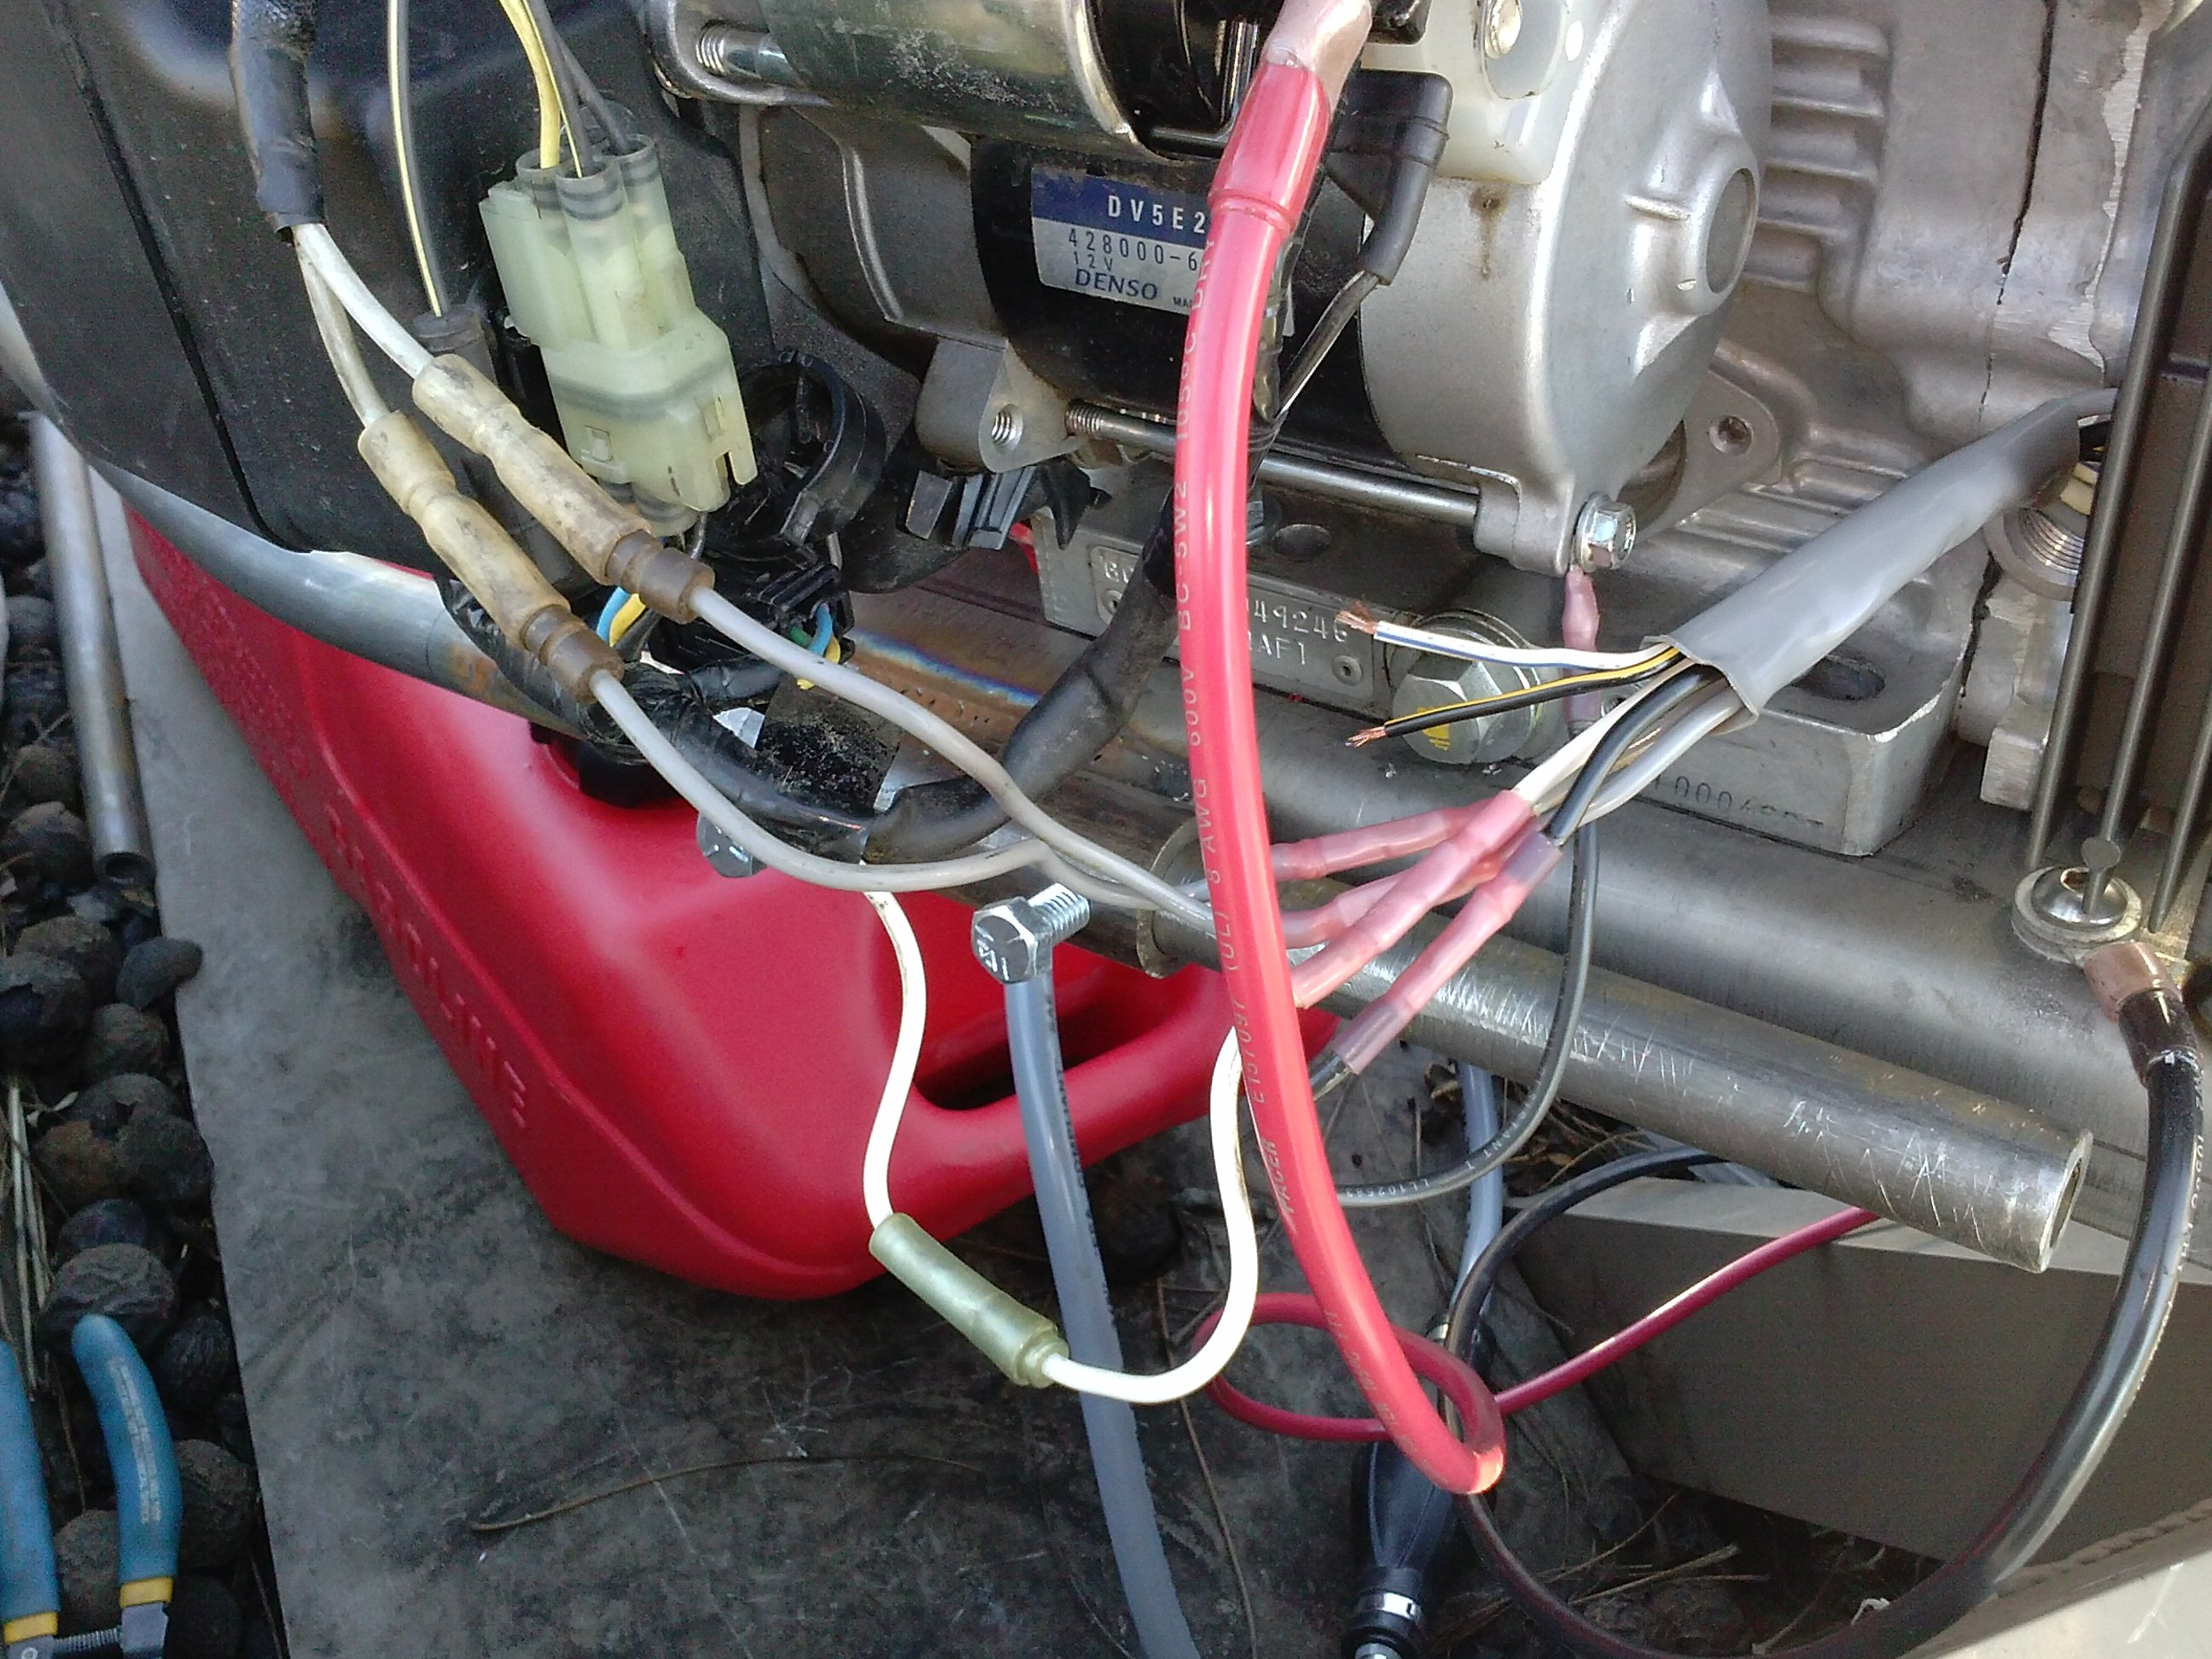 2013 12 01_204034_cam006151 i need help troubleshooting the charging system on a honda gx630 honda gx630 wiring diagram at mifinder.co